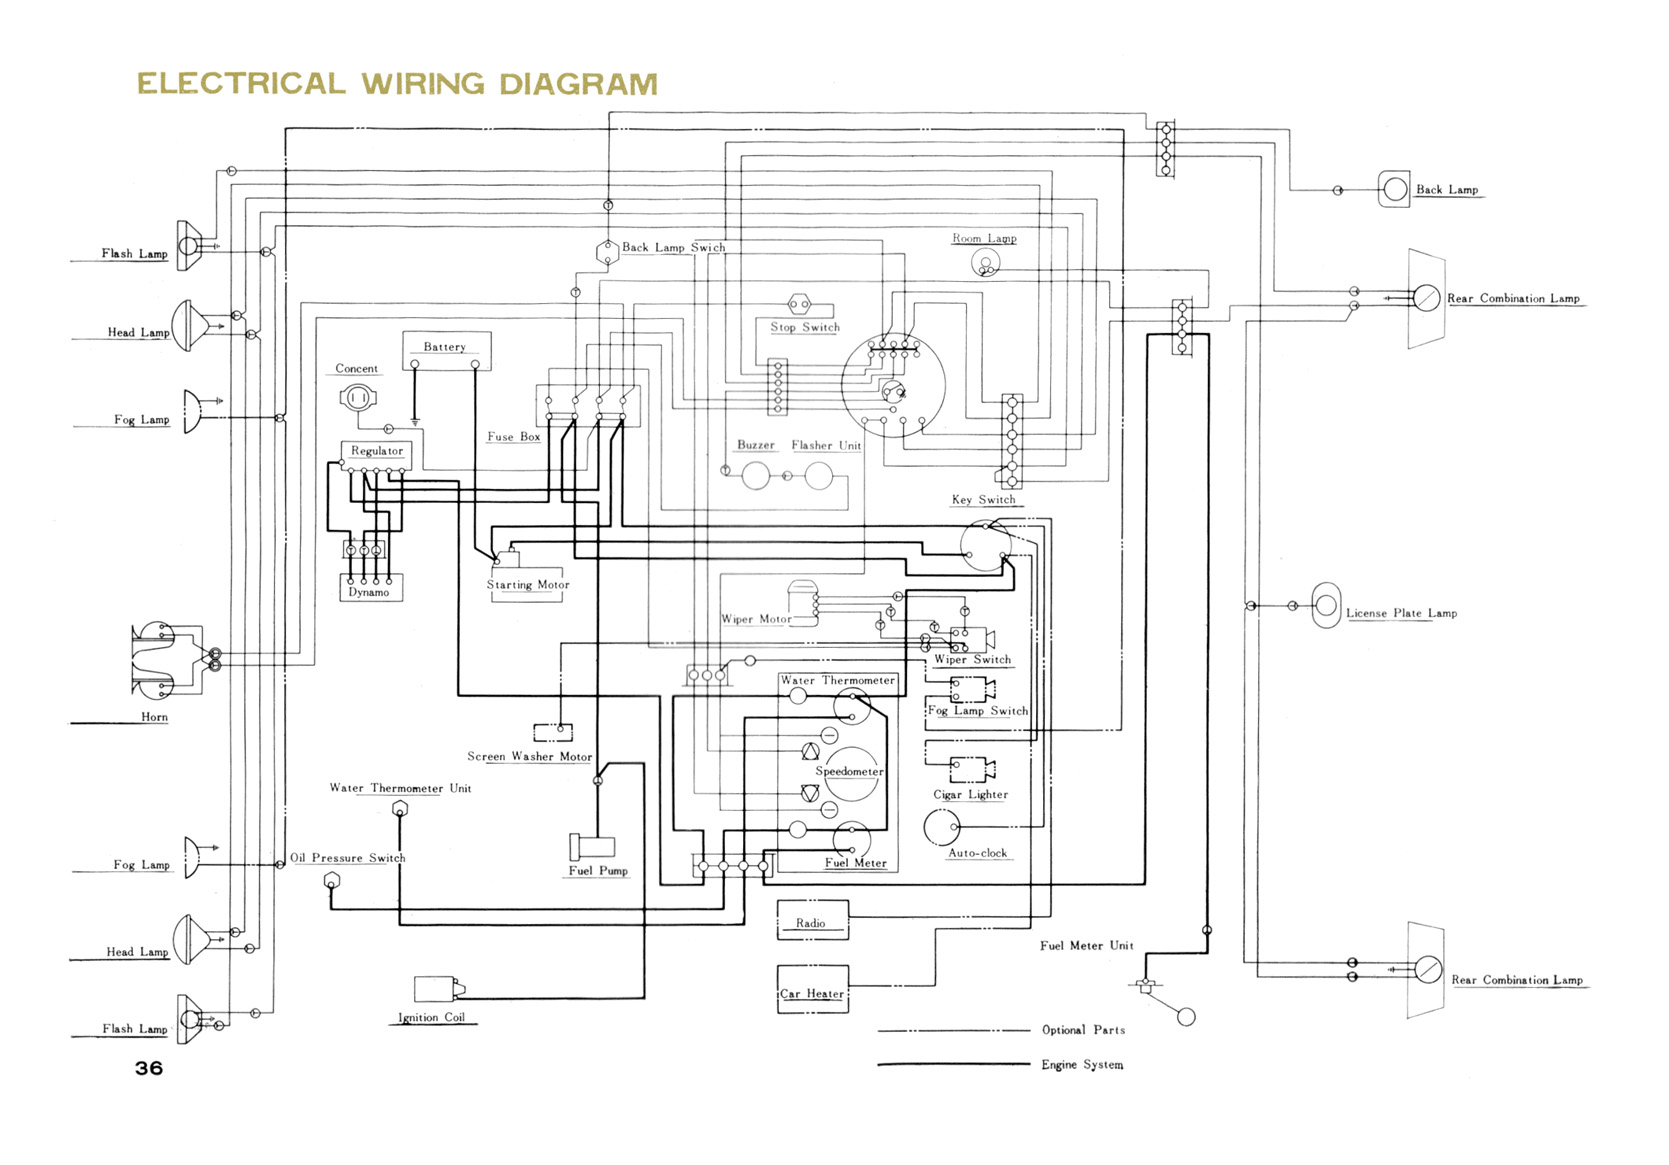 Mazda Familia Wiring Diagram Reinvent Your 2002 626 800 And 1000 Owners Manual 1963 Estate Au Rh Wyatt Software Com 323 Bj